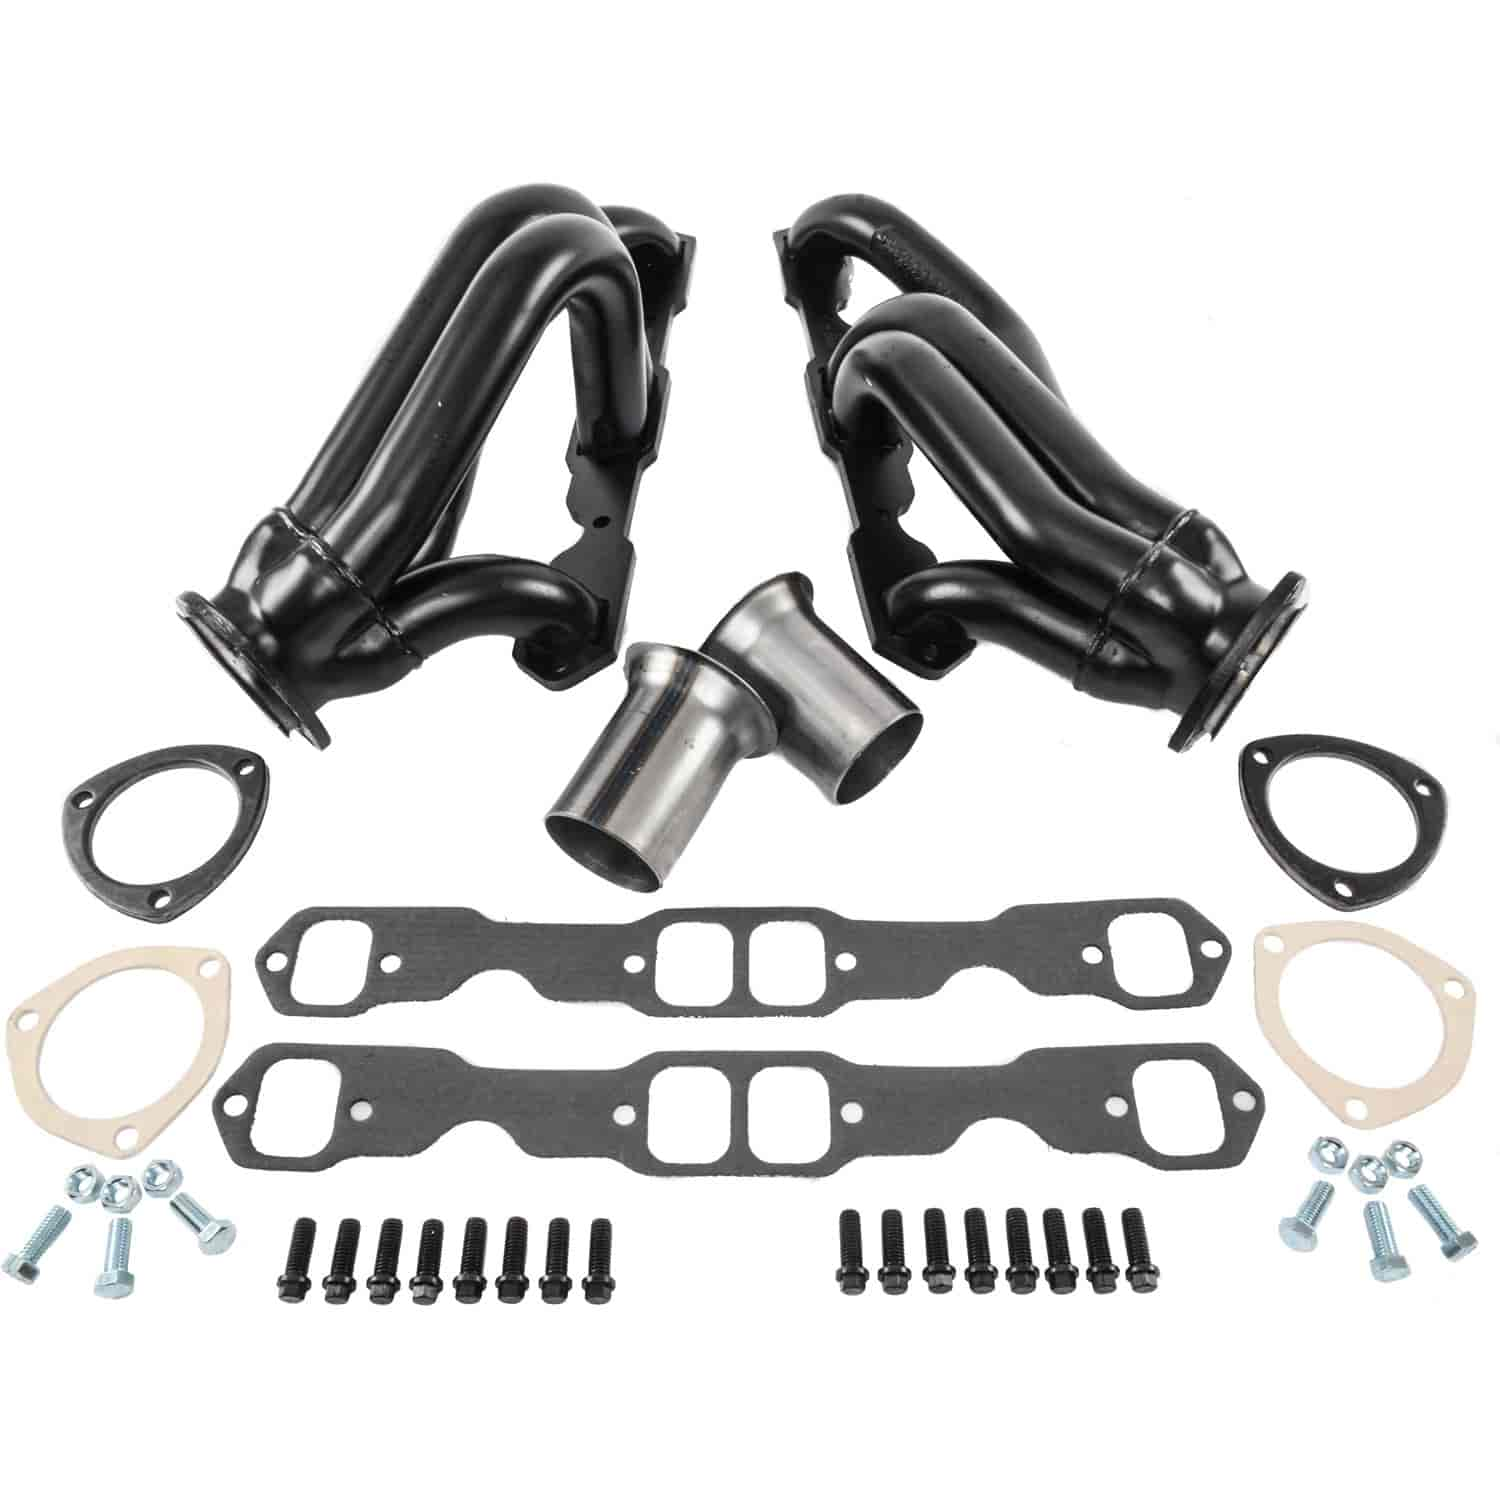 Hedman 69560: S10 Engine Swap Headers 1982-2000 S10 With